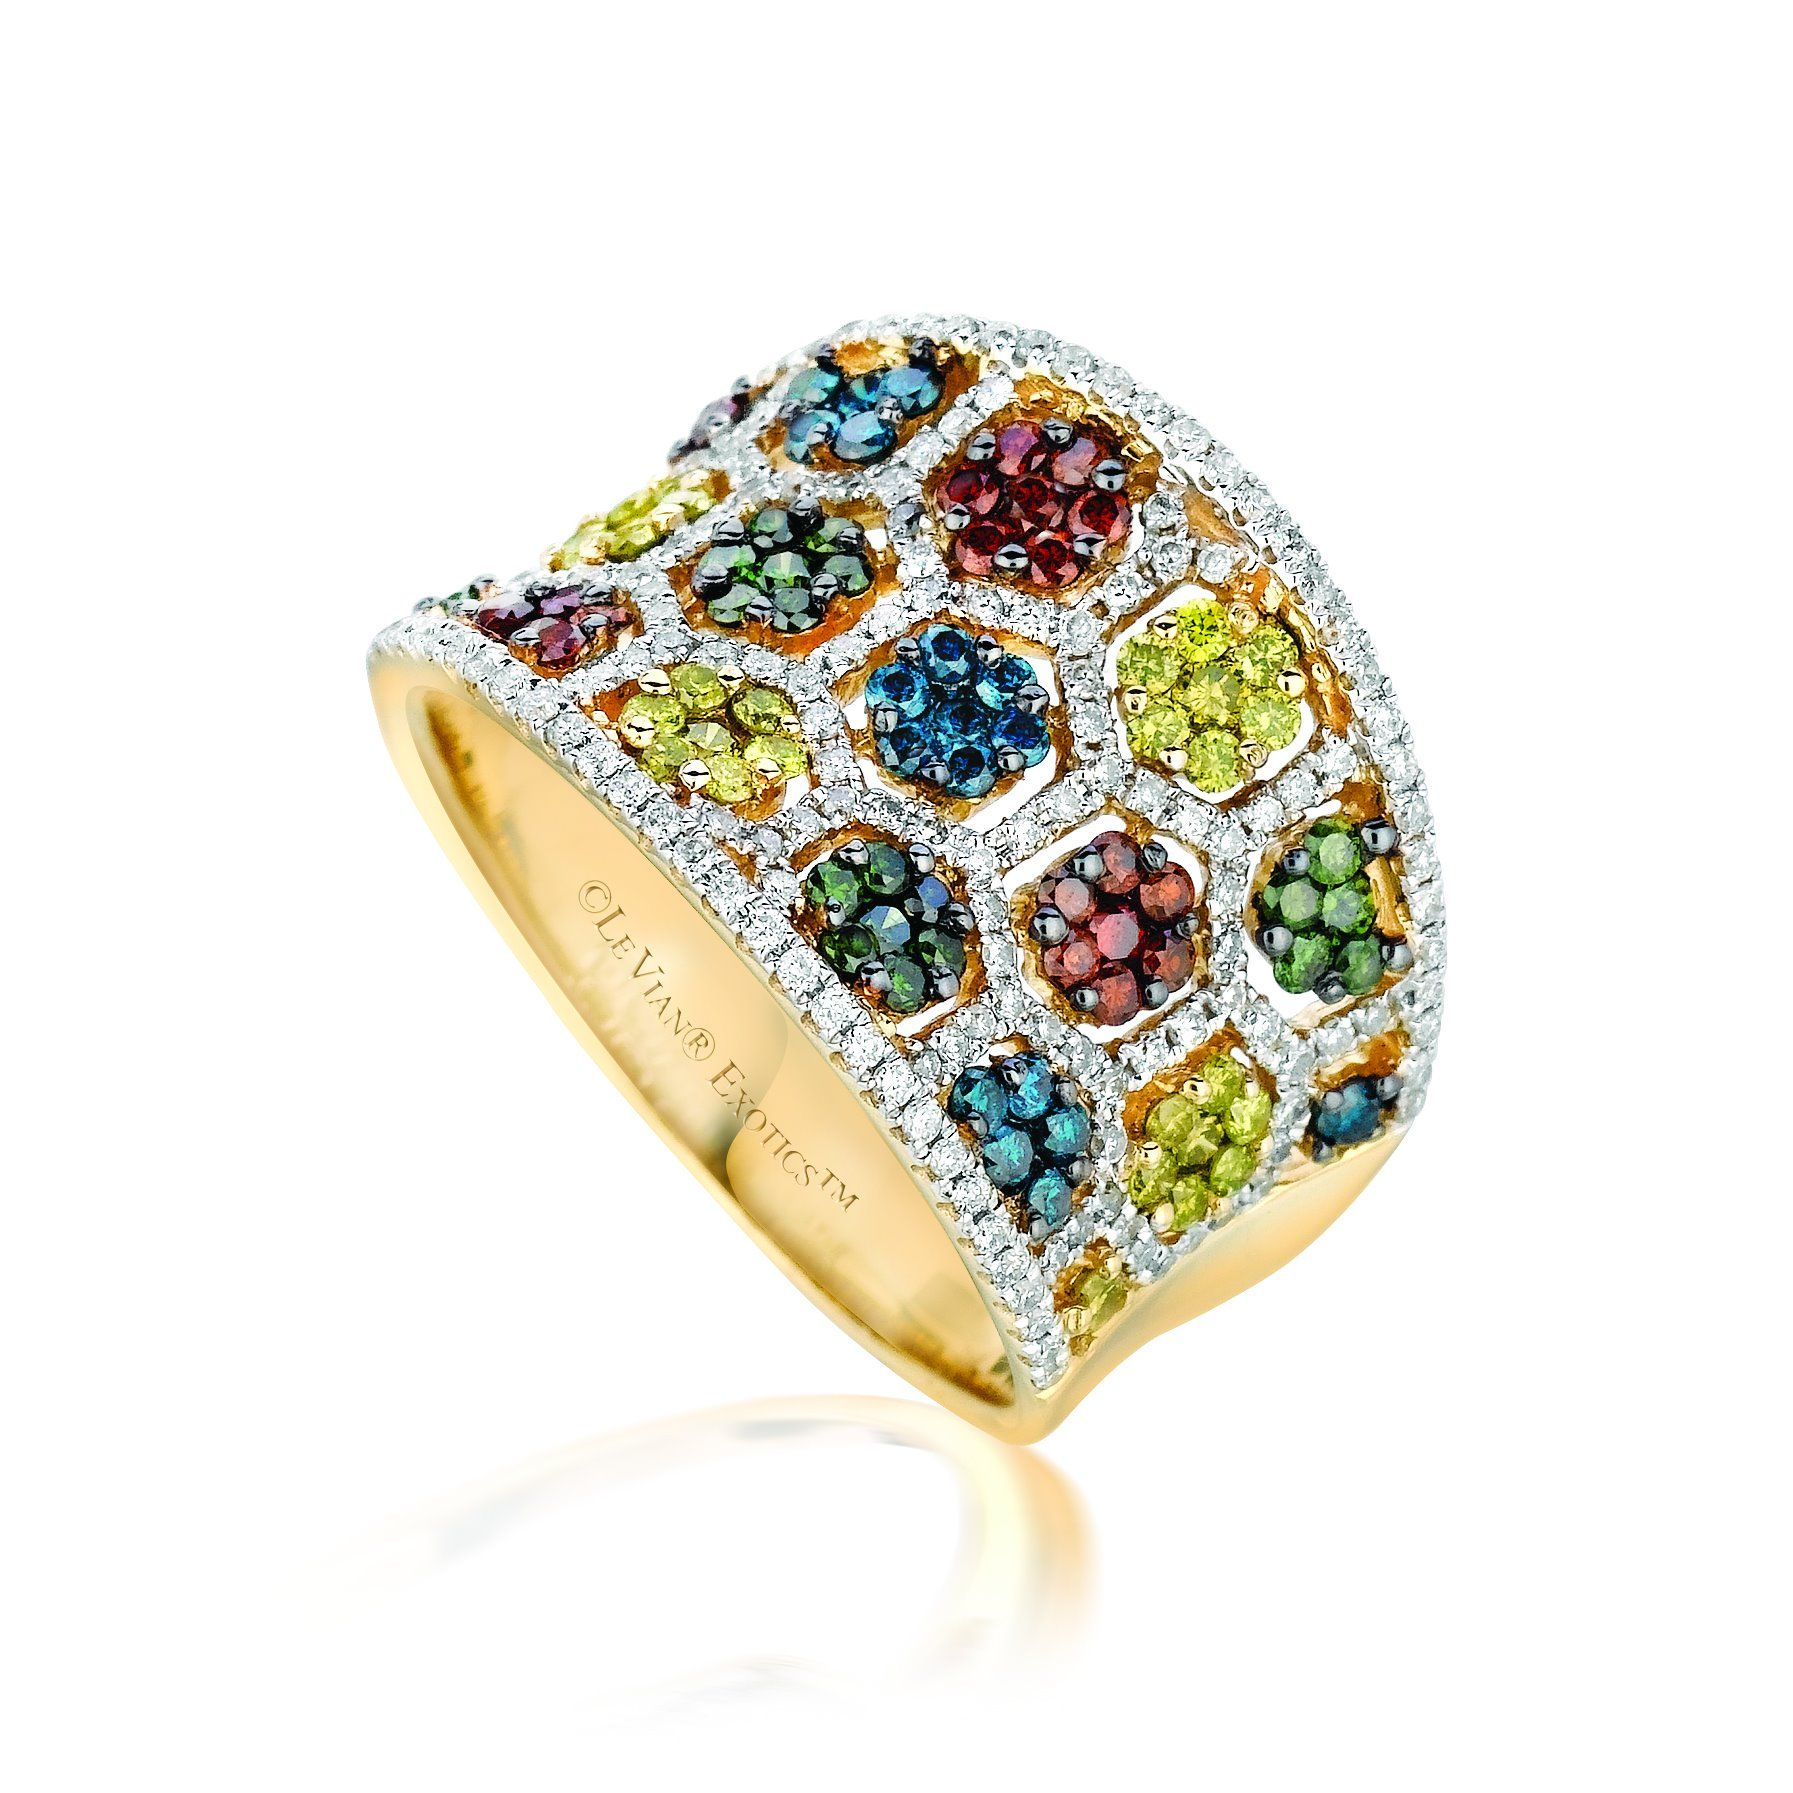 zahm tsavorite with philip ring pin green exotic diamond in garnet yellow gold